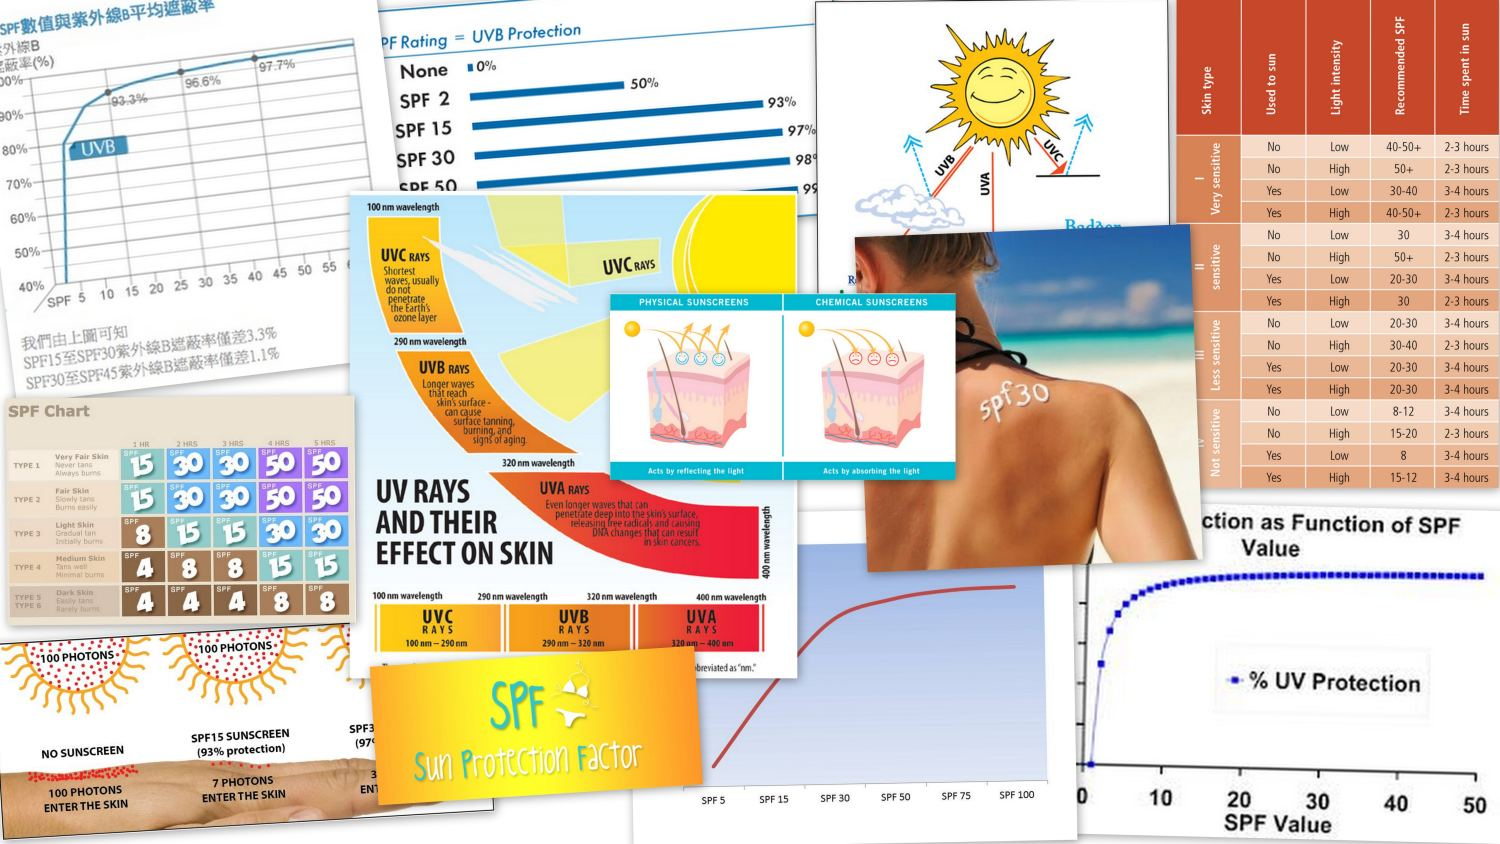 SPF - Sun Protection Factor